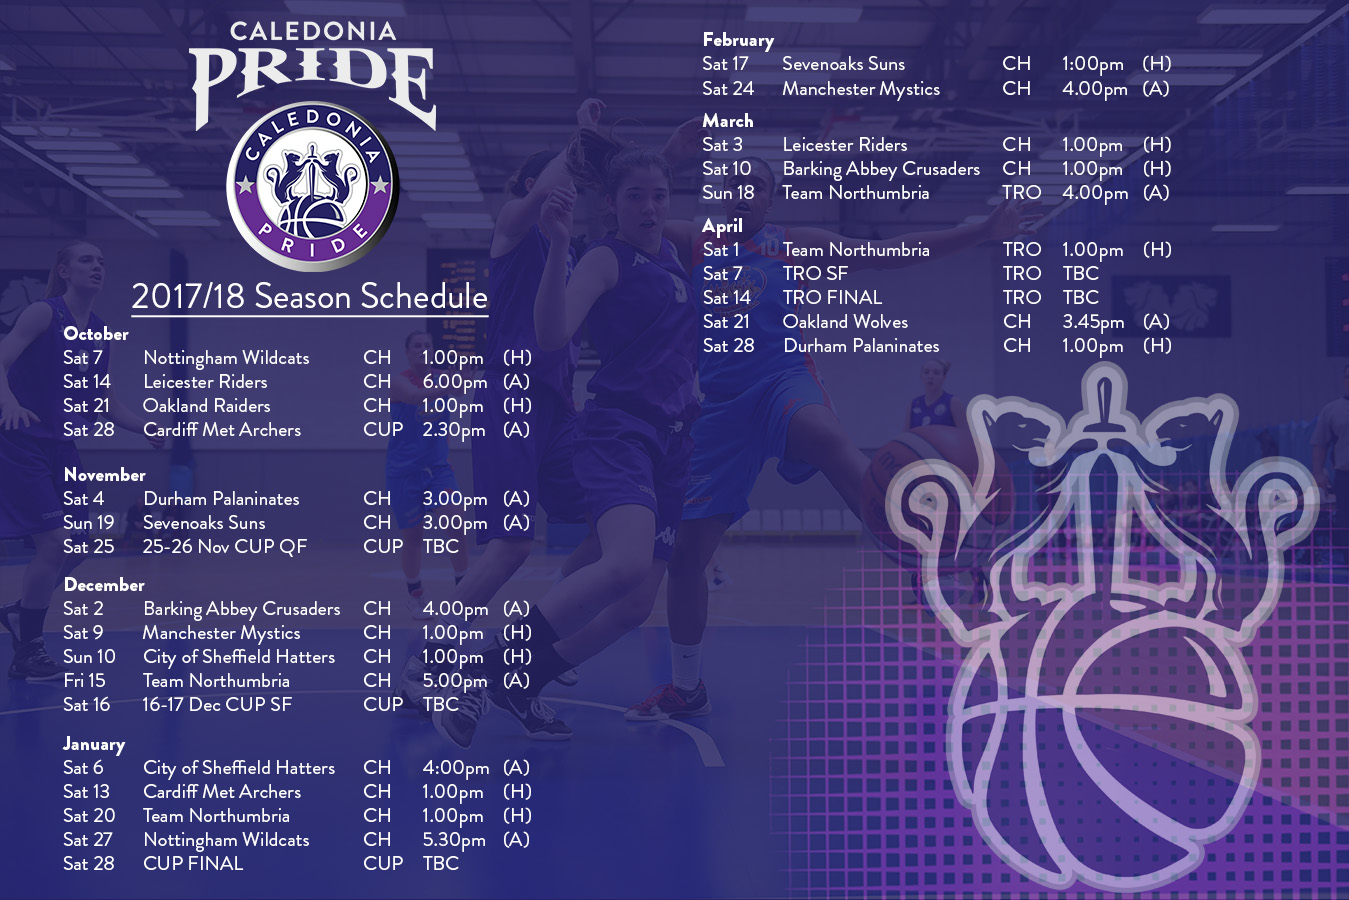 2017 18 Uk Basketball Schedule Now Complete: Caledonia Pride Confirm 2017-18 Schedule And Pricing